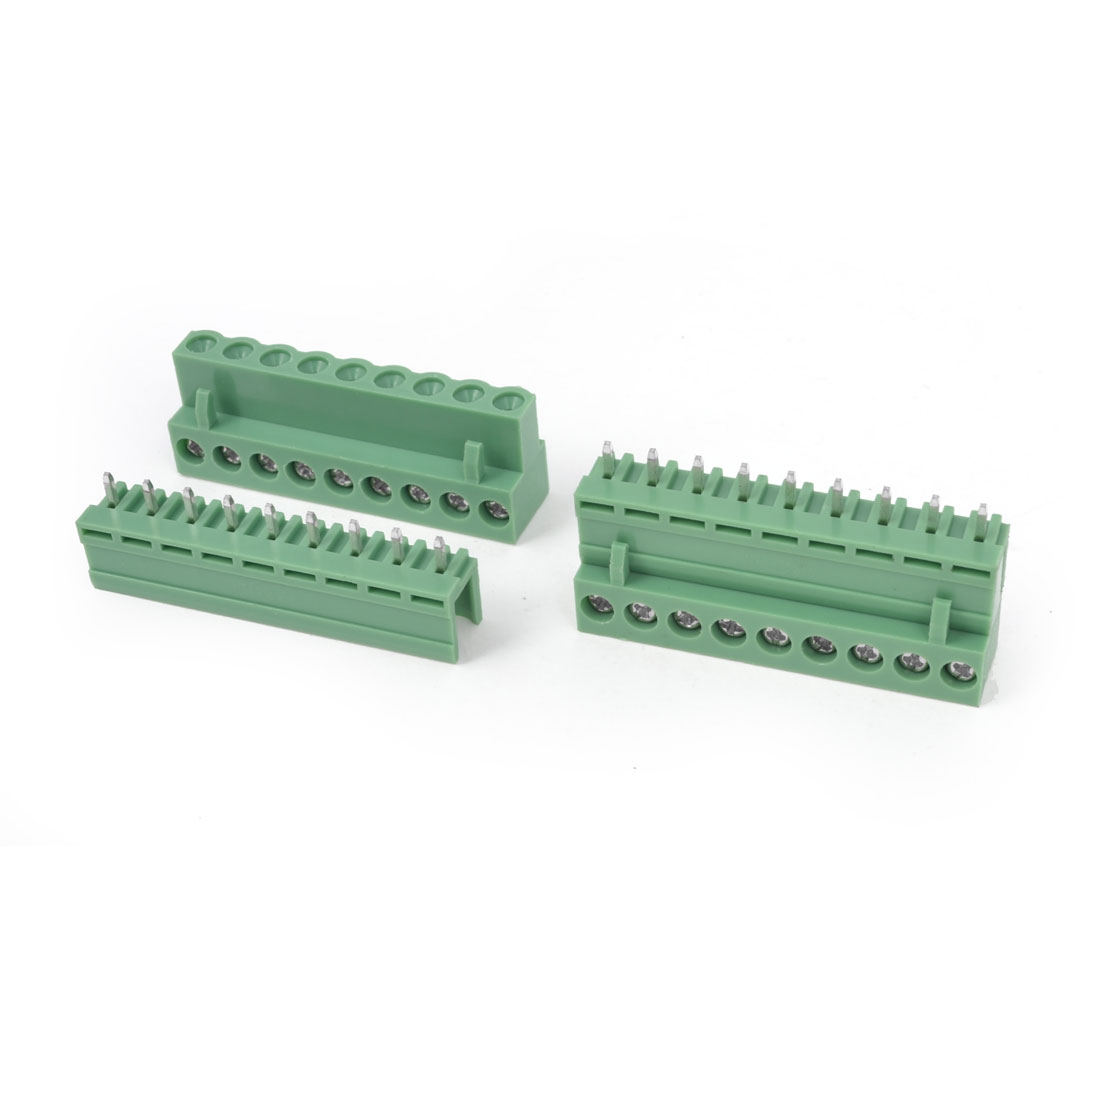 2Pcs AC 300V 10A 9P Pins PCB Screw Terminal Block Connector Pitch 5.08mm Green